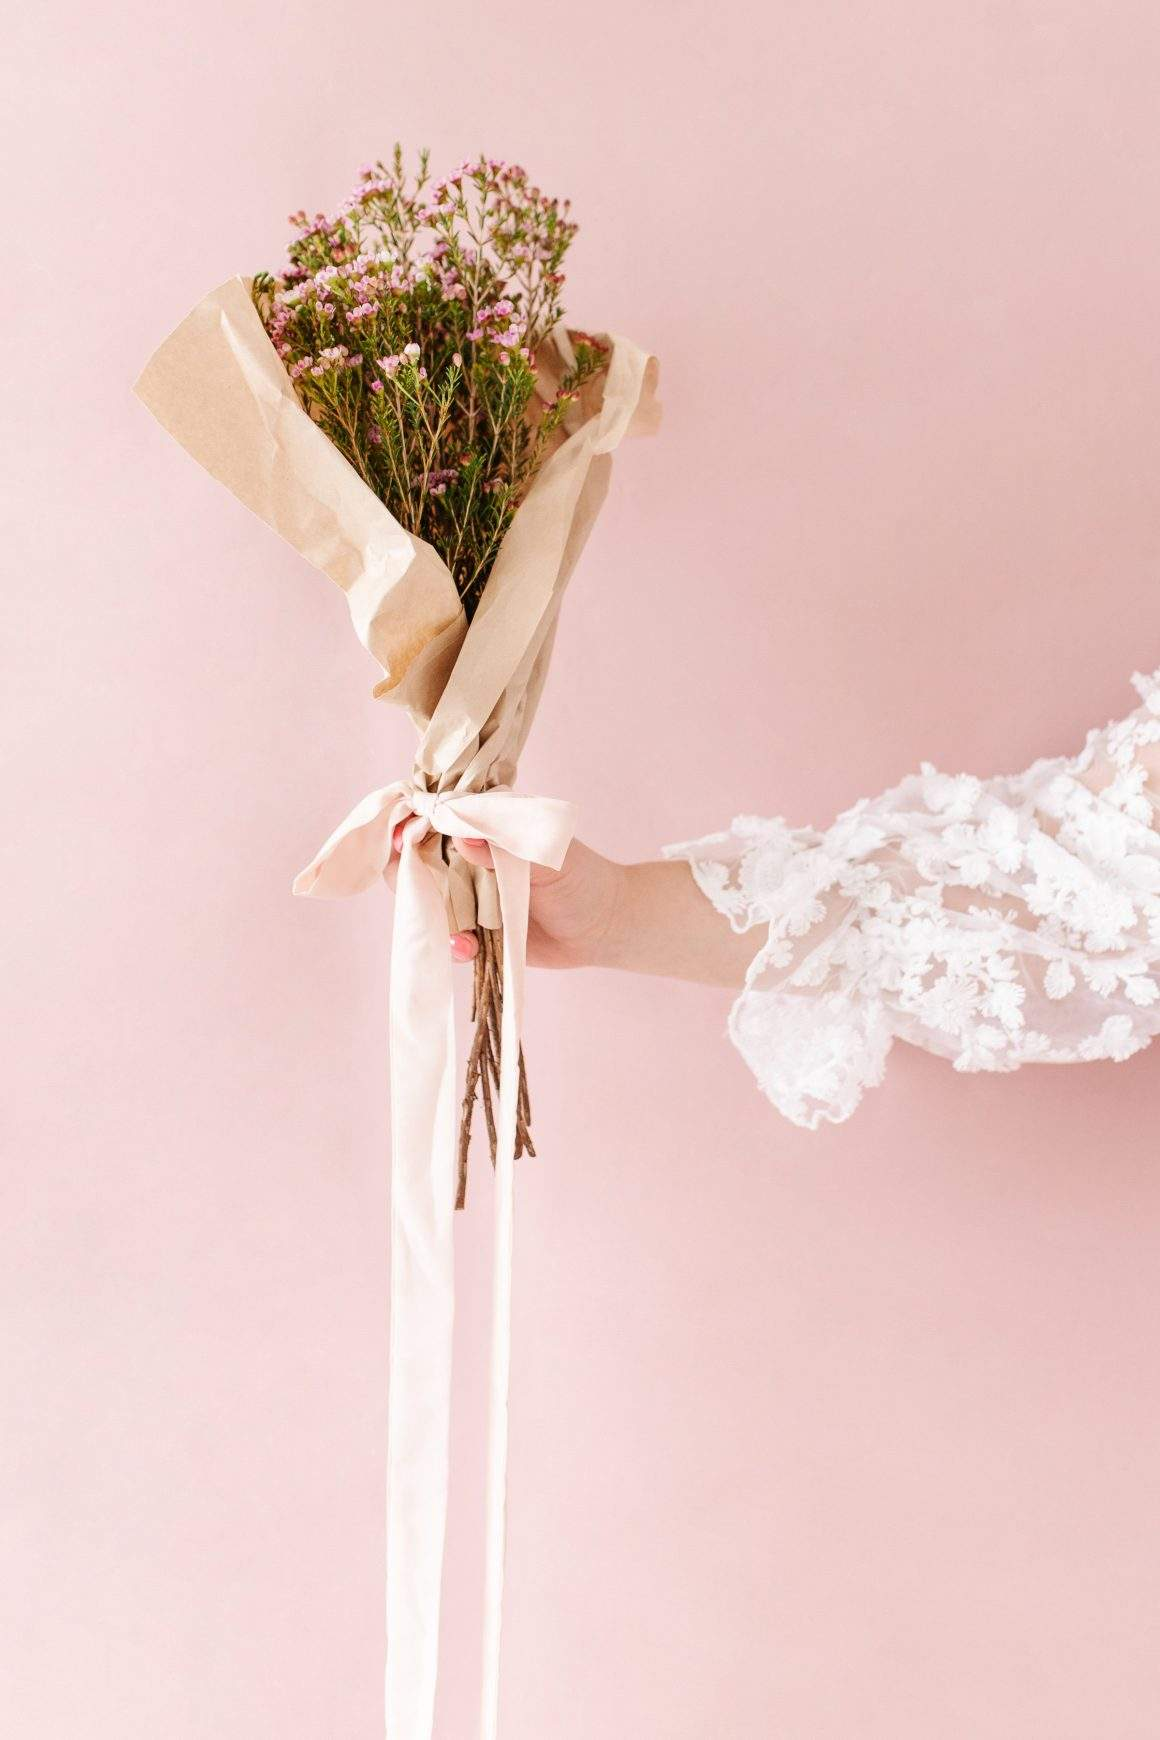 How To Romanticize Your Life